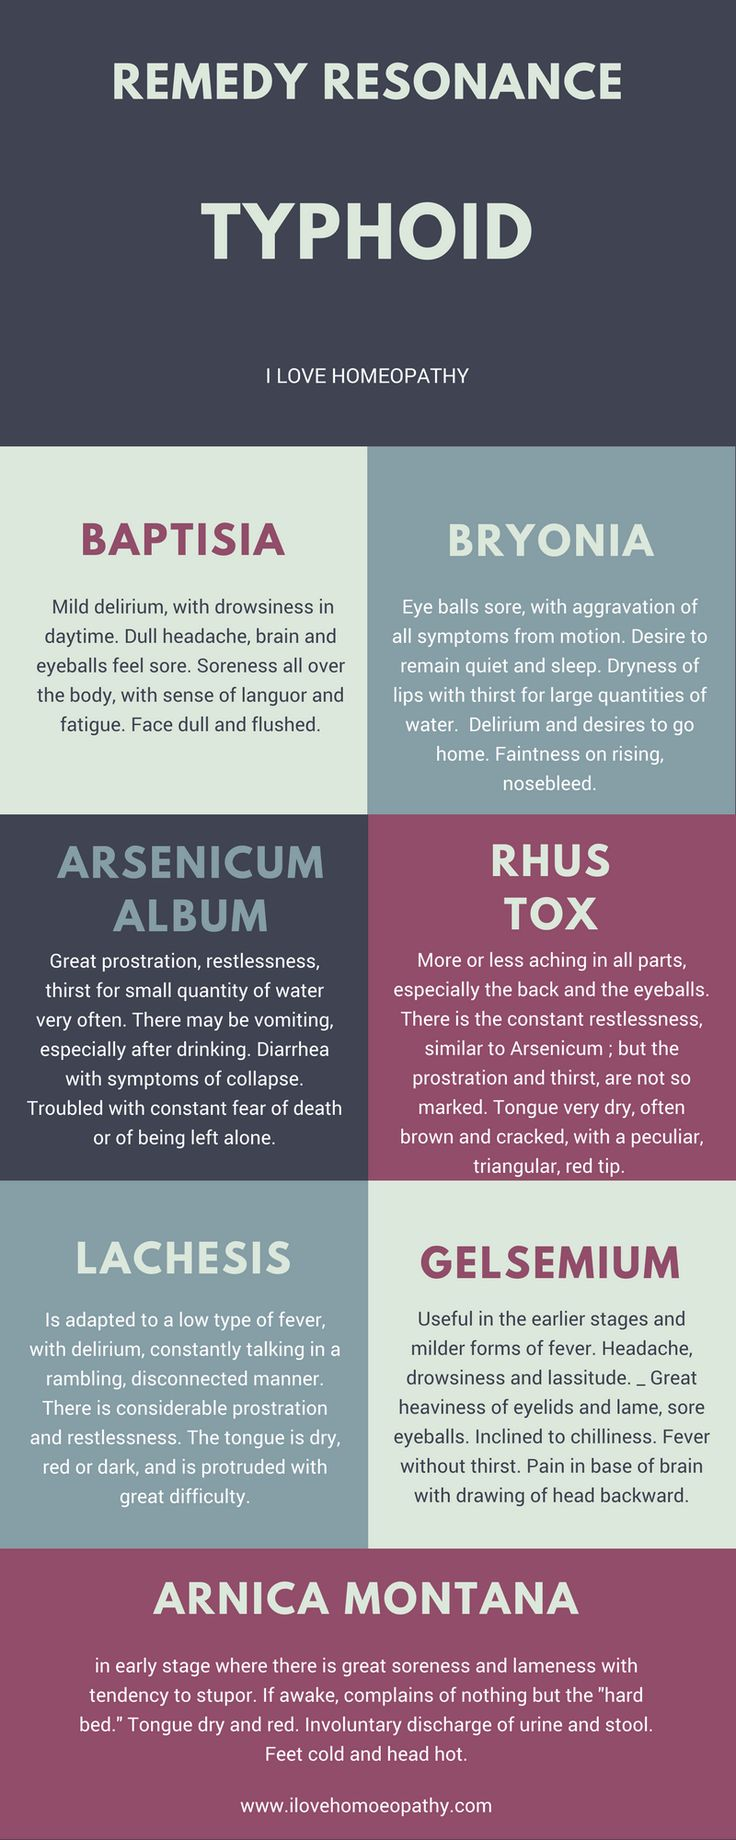 1419 best Homeopathy images on Pinterest | Homeopathic remedies ...